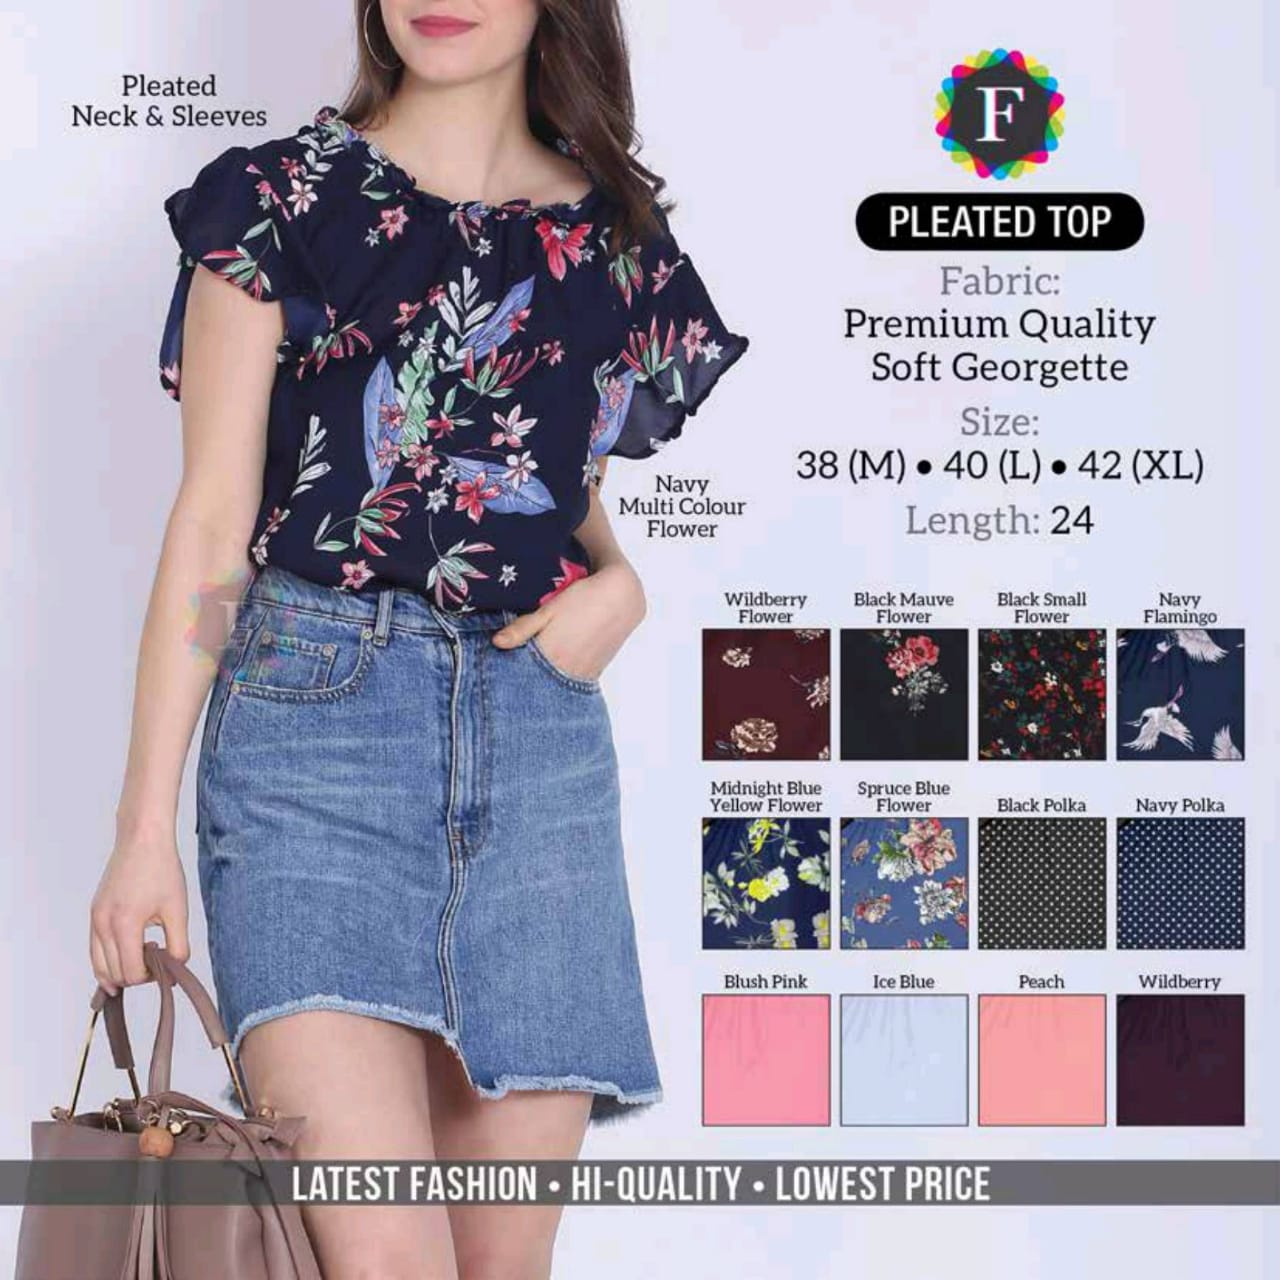 Buy Western Frill Top Flared Top Printed Top Glamorous Top Knotted Dress Collection At Wholesaler Price